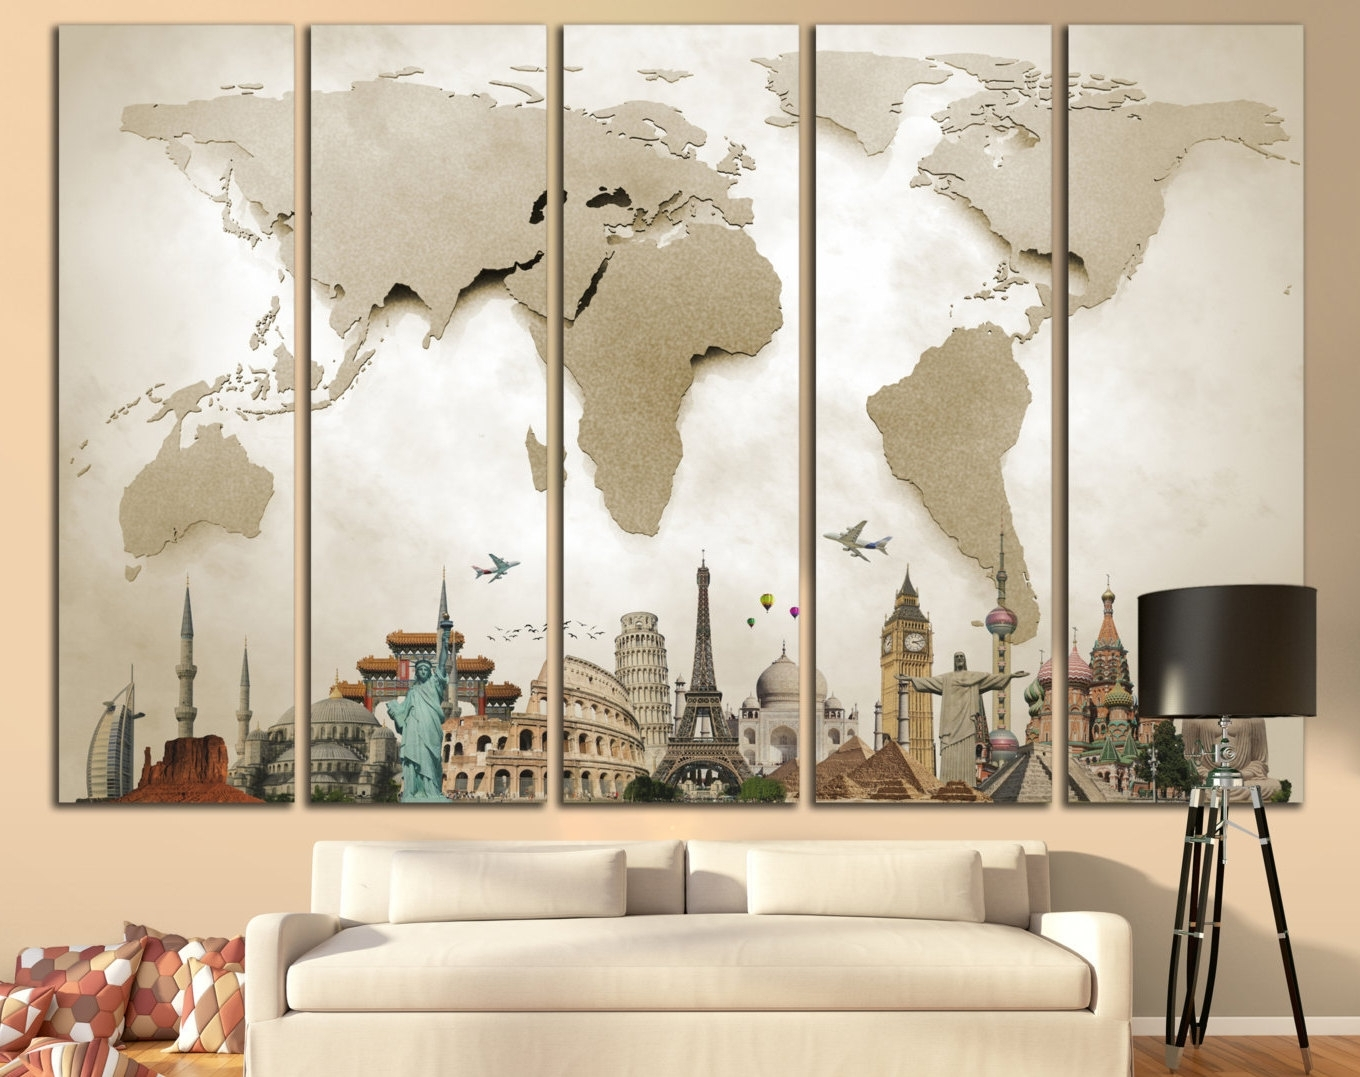 Most Current Maps Wall Art Within Large Wall Decor Ideas Maps : Amazing Large Wall Decor Ideas Options (Gallery 10 of 20)